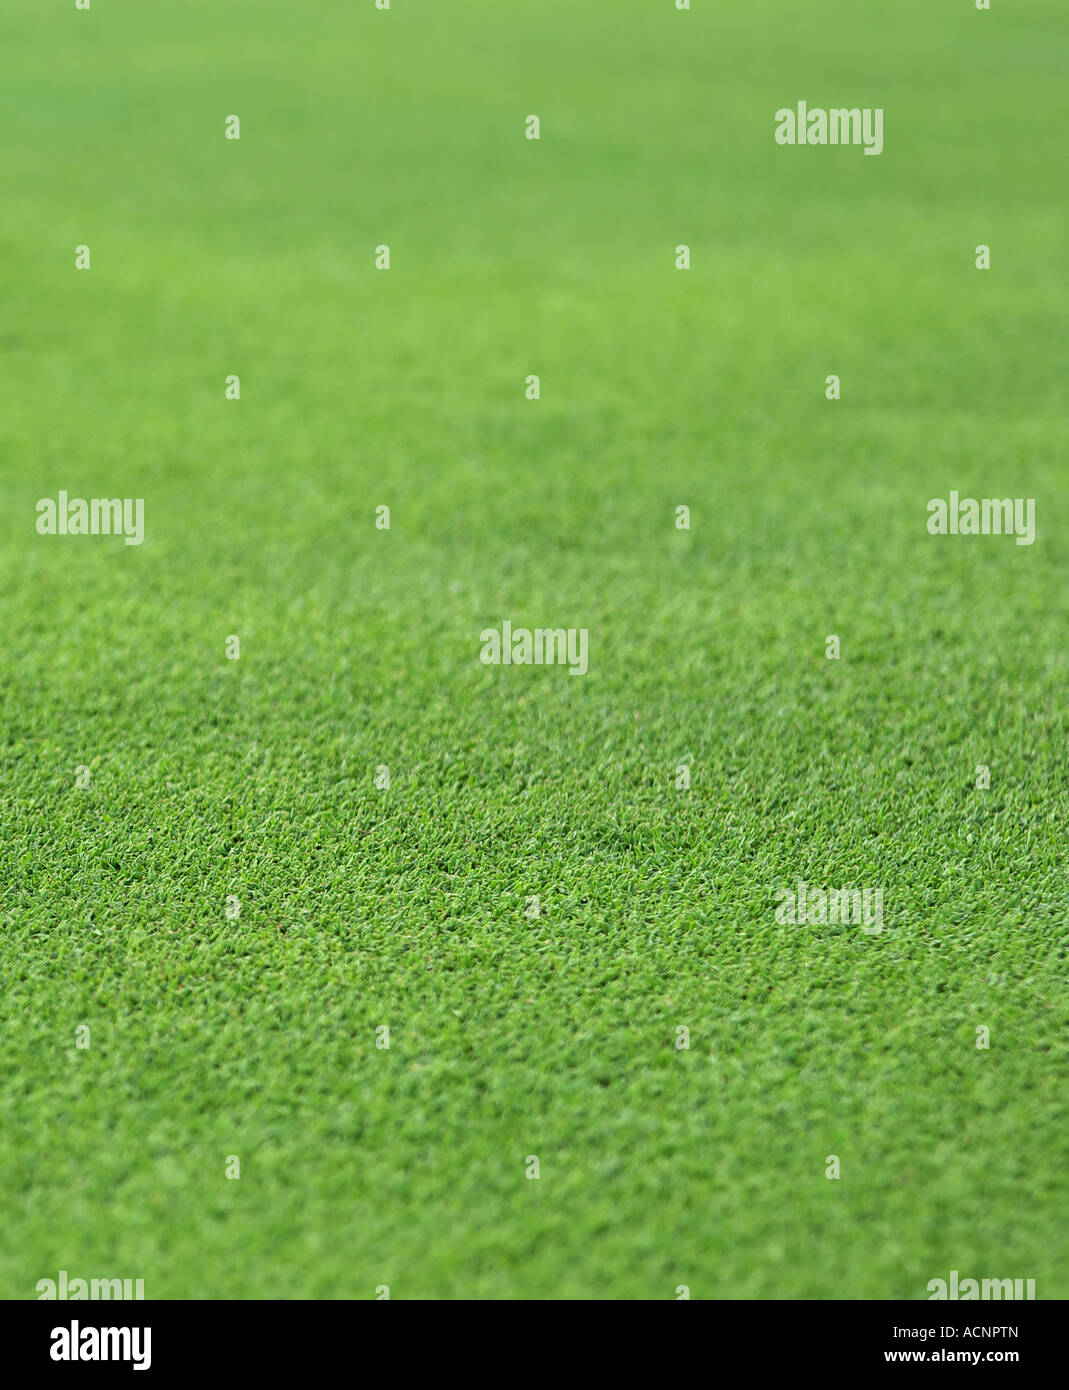 the finely manicured green grass or turf from a golf hole green - Stock Image